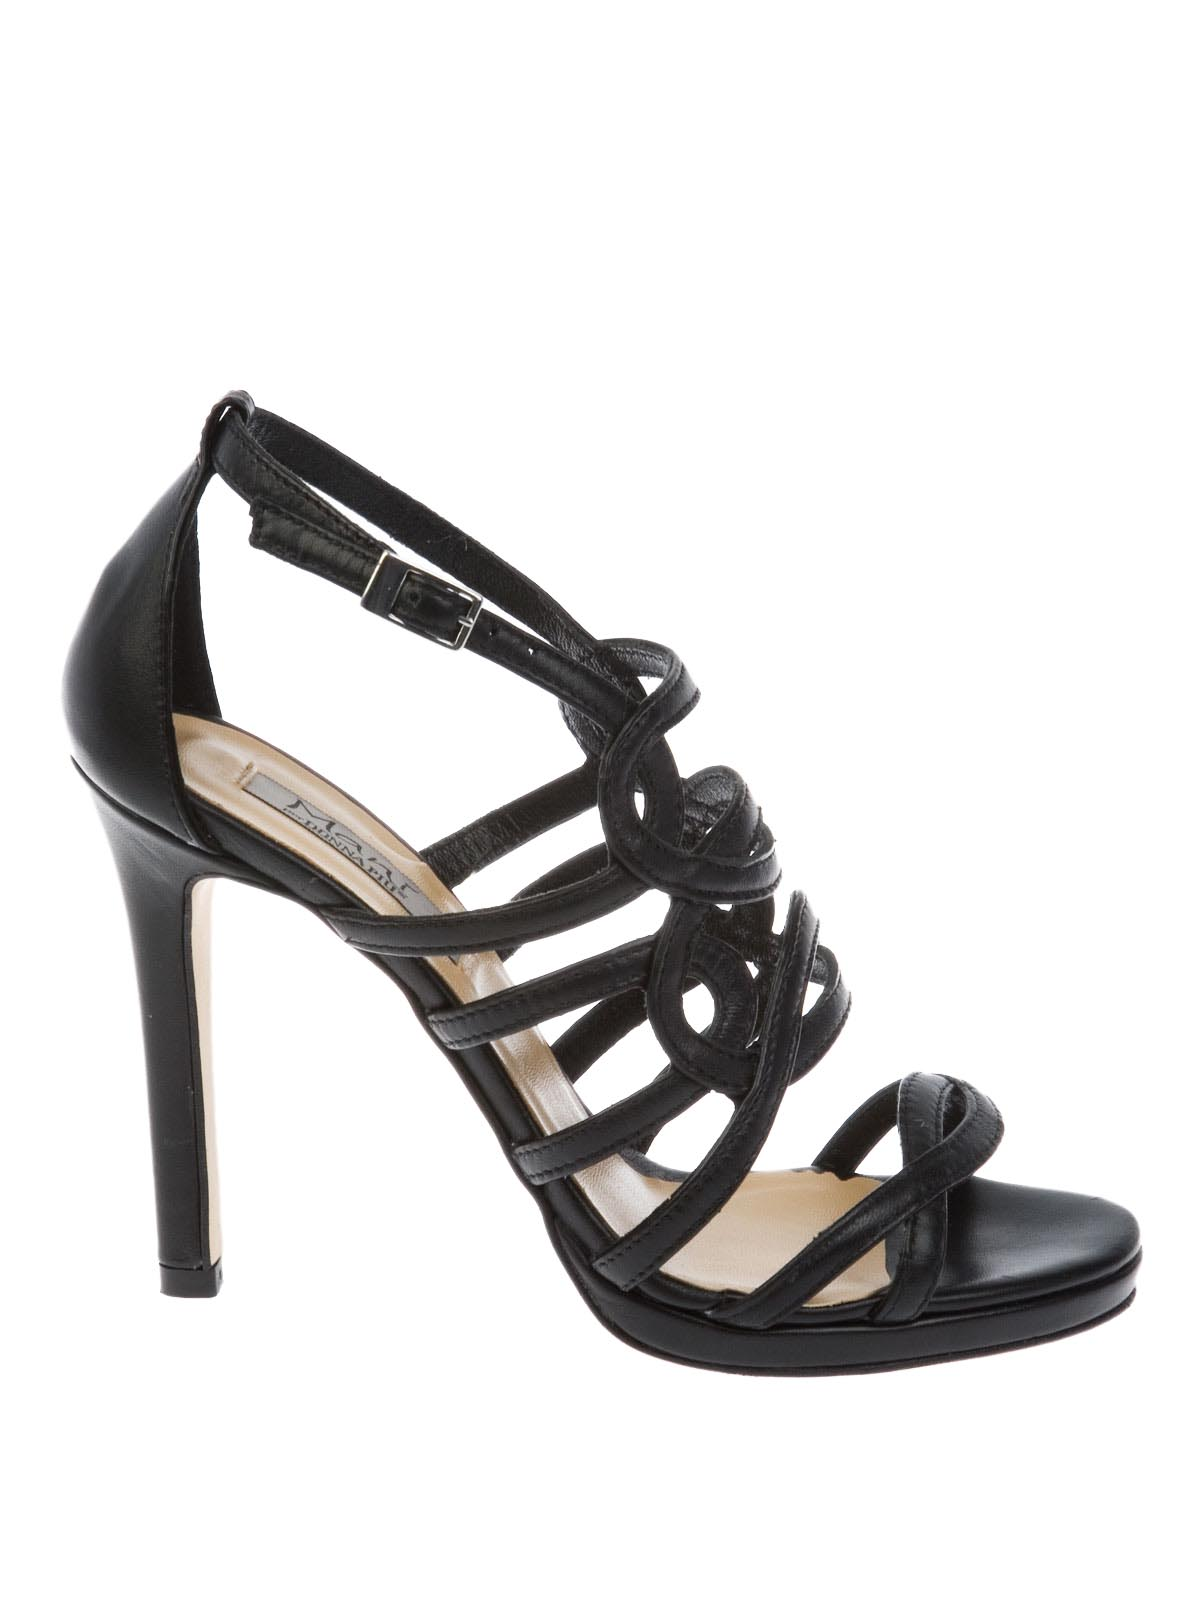 Picture of Donnapiù | Sandal Heel 90